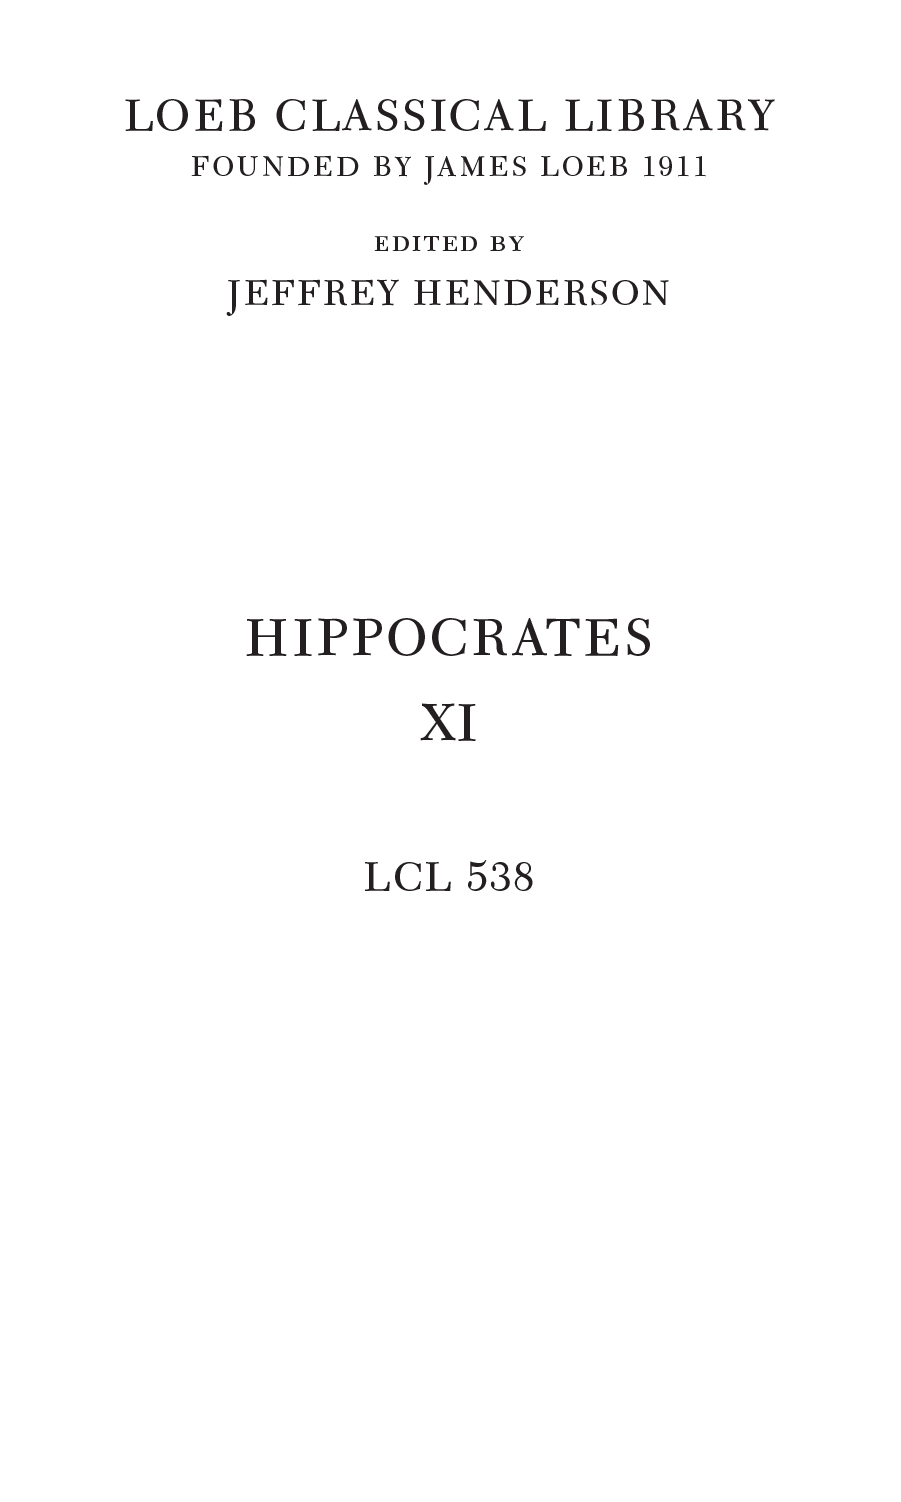 LOEB CLASSICAL LIBRARY FOUNDED BY JAMES LOEB 1911 edited by JEFFREY HENDERSON HIPPOCRATES XI LCL 538